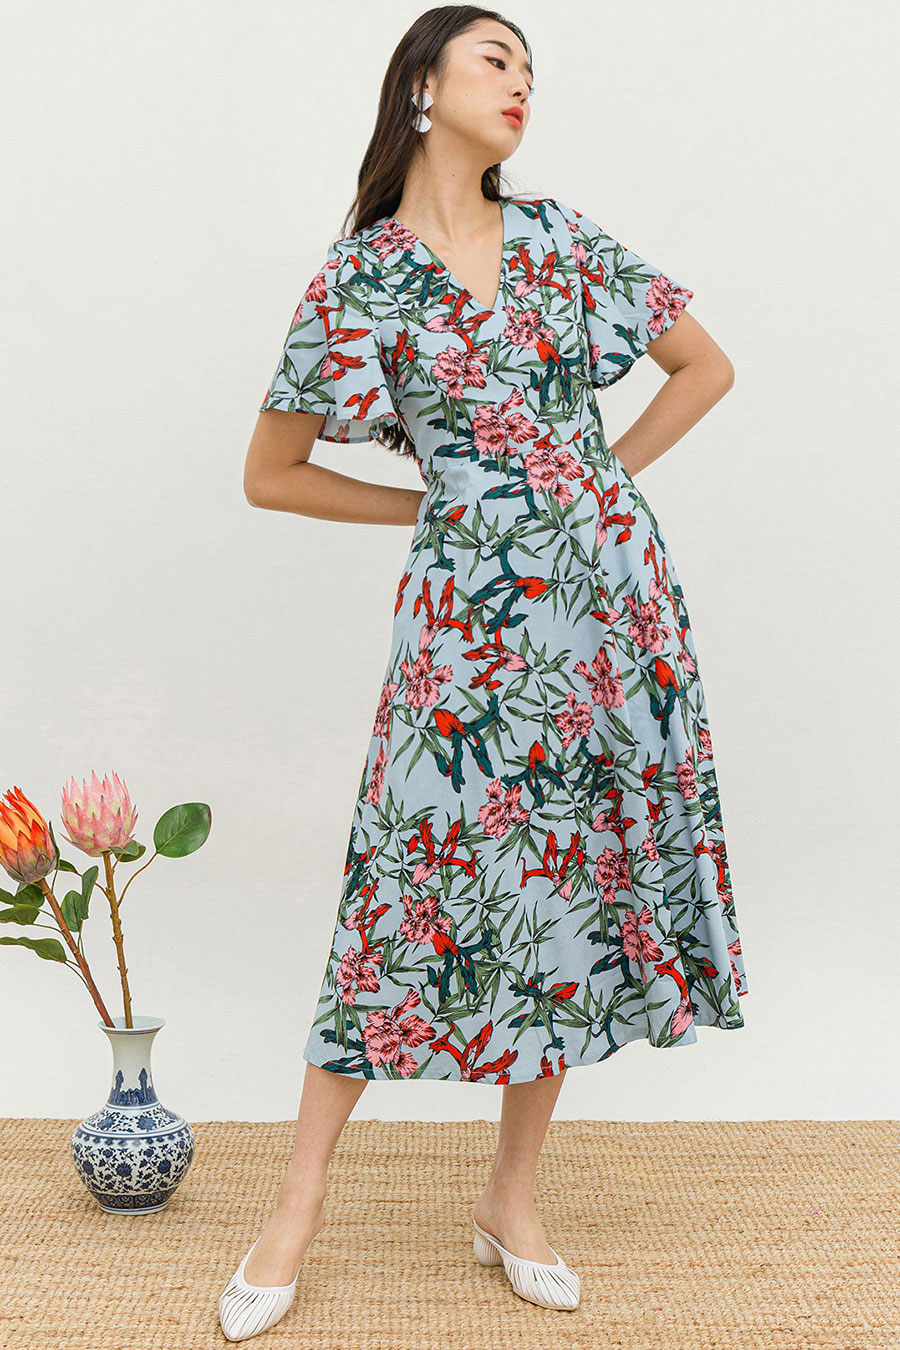 *RESTOCKED* SHANDY DRESS - BIRDS OF PARADISE [BY MODPARADE]